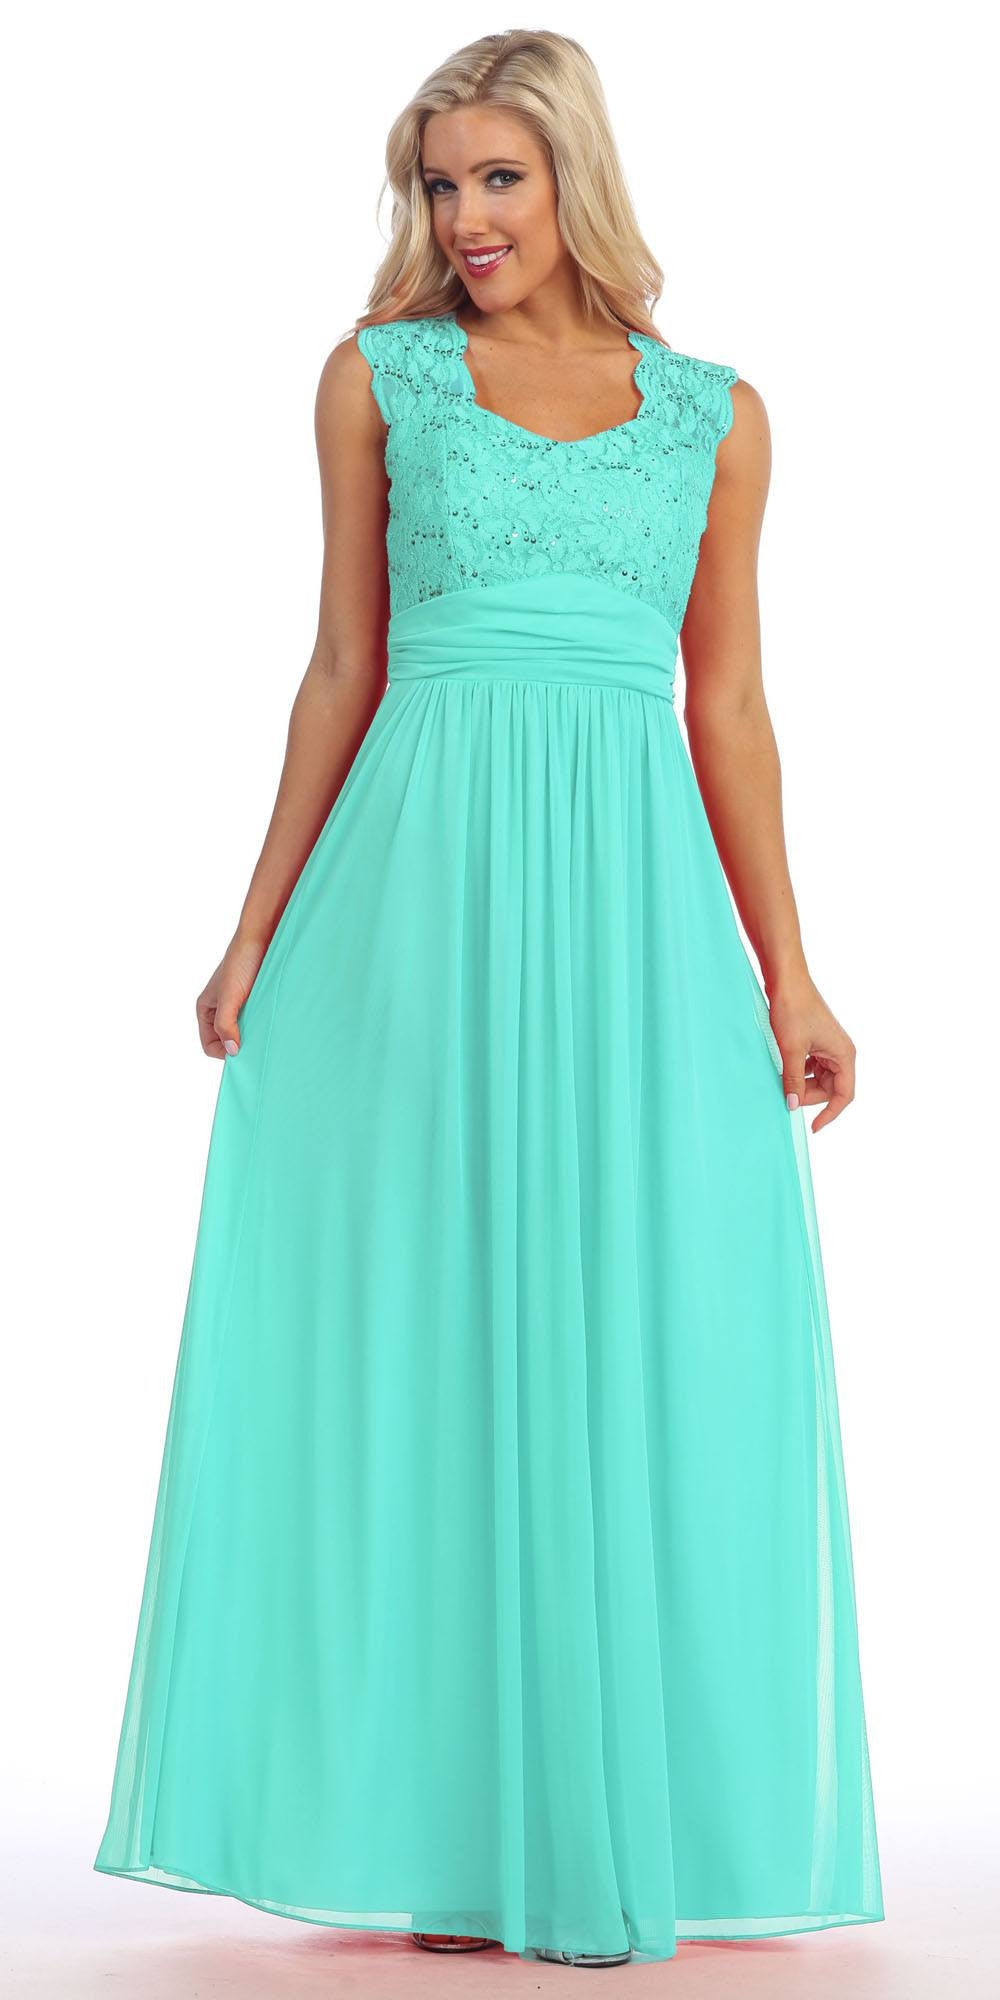 Mint Lace Bodice A-Line Long Semi Formal Dress Queen Anne Neckline